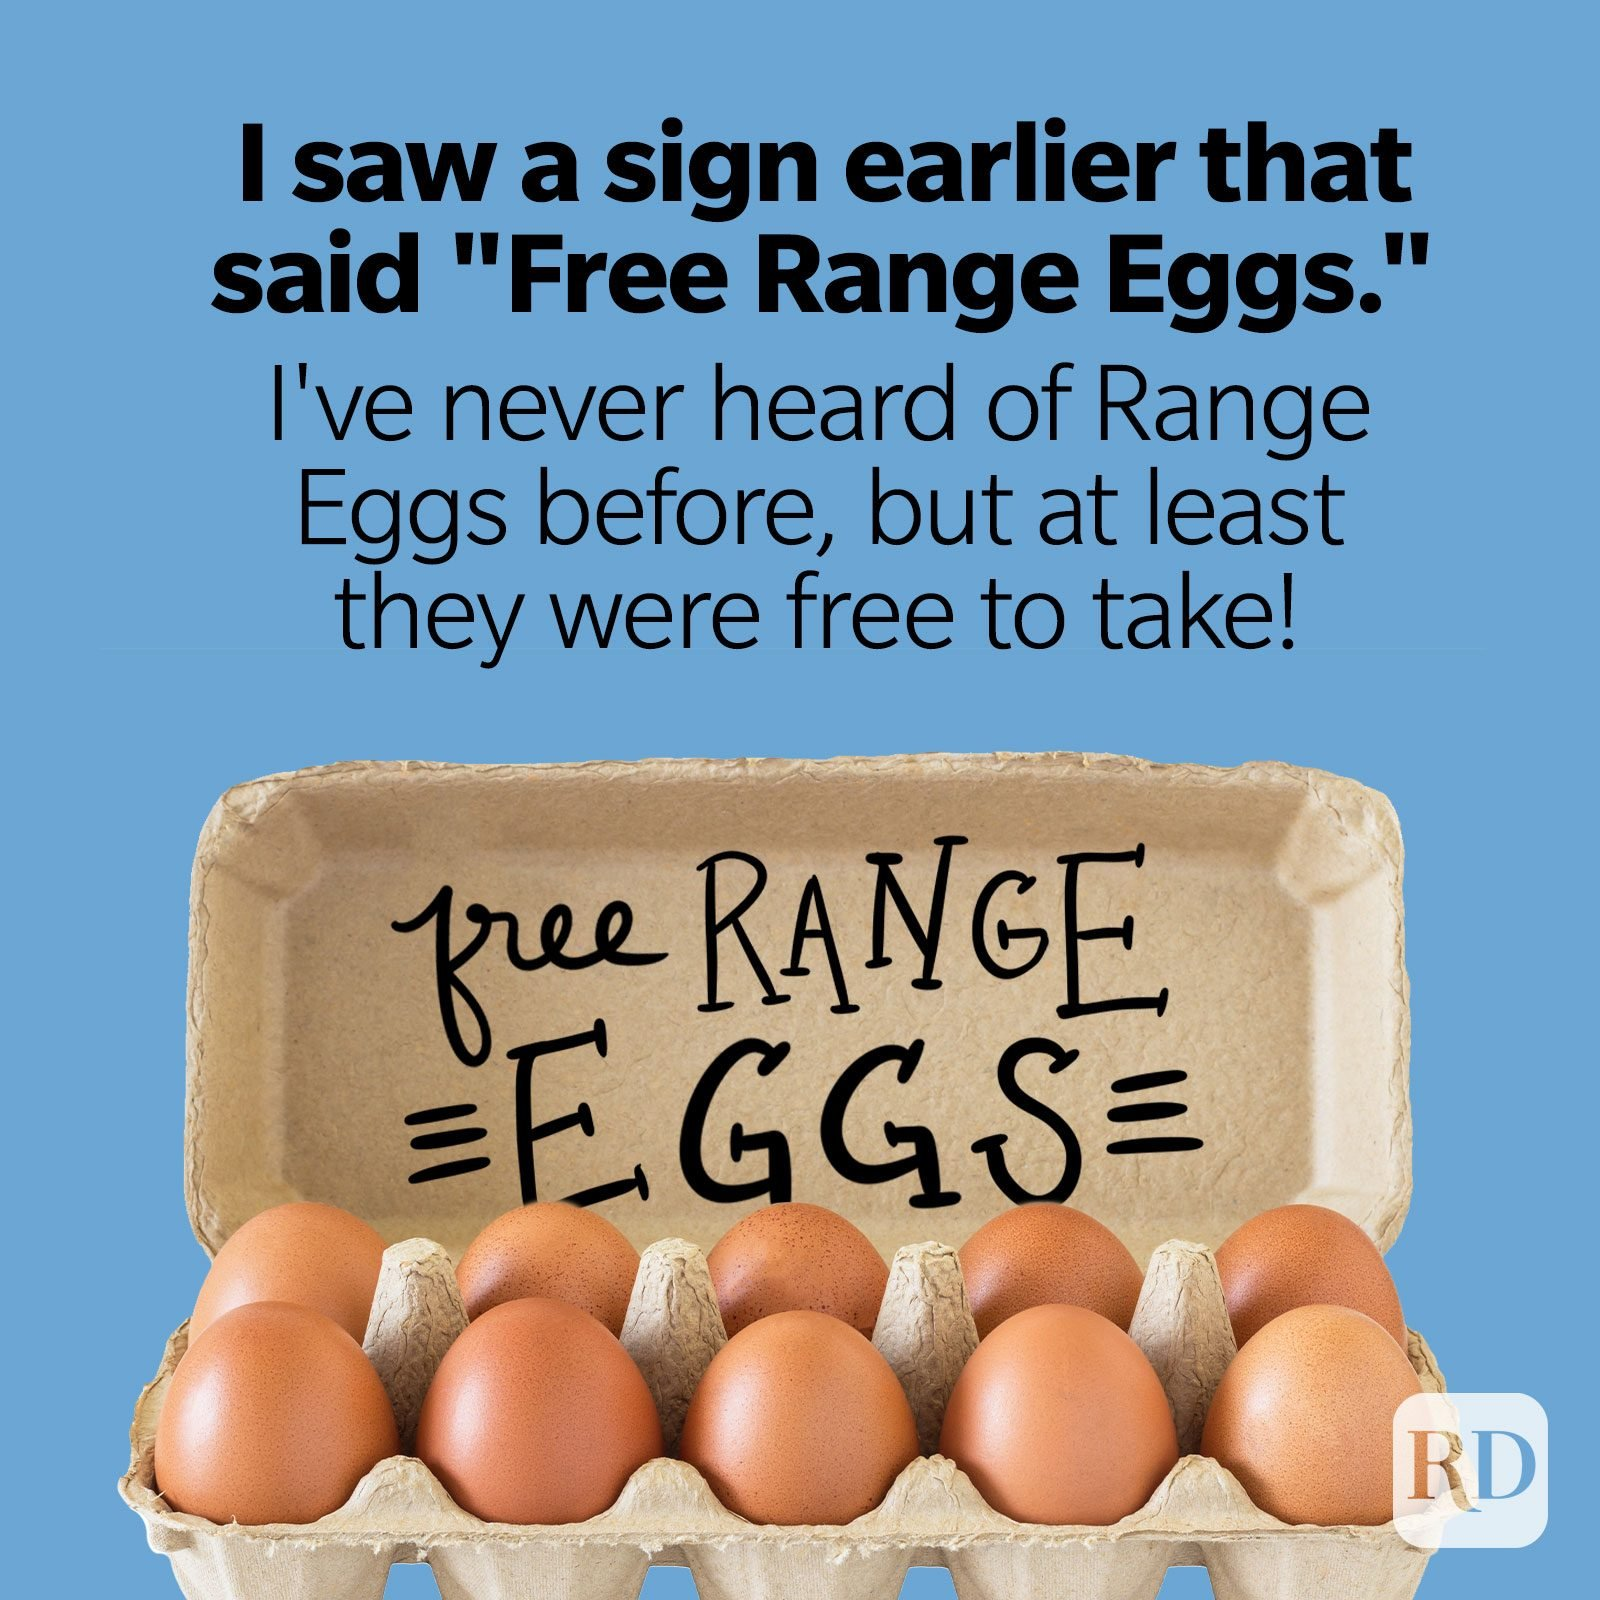 "I saw a sign earlier that said ""Free Range Eggs."" I've never heard of Range Eggs before, but at least they were free to take!"